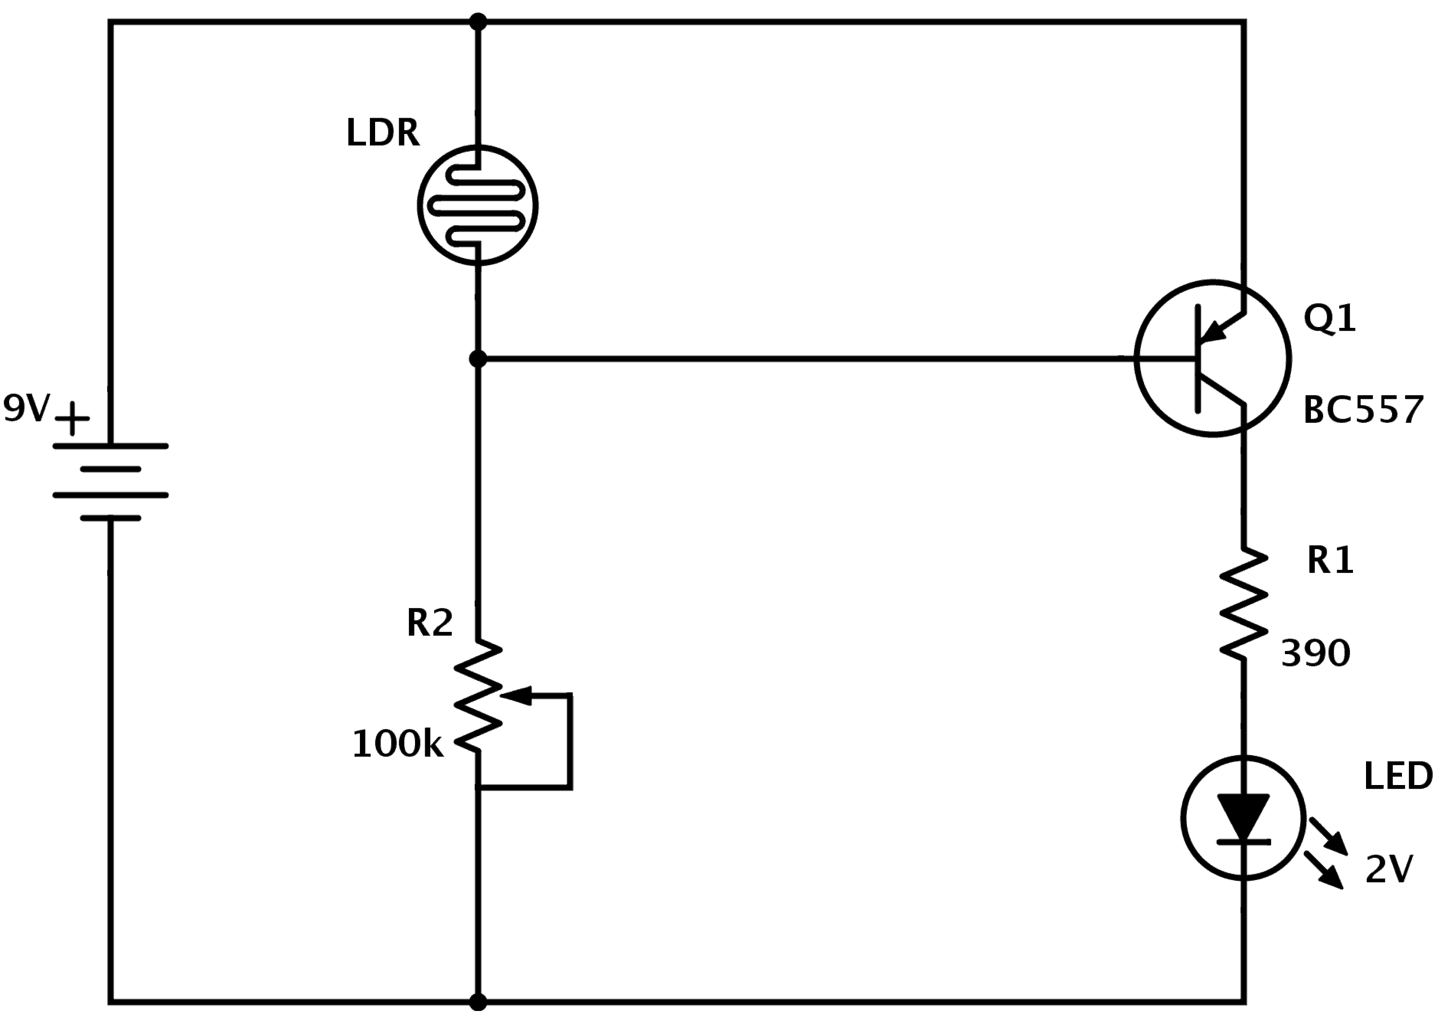 Ldr Circuit Diagram Build Electronic Circuits Results For 5 Way Light Switch Wiring With Pnp Transistor Dark Detector